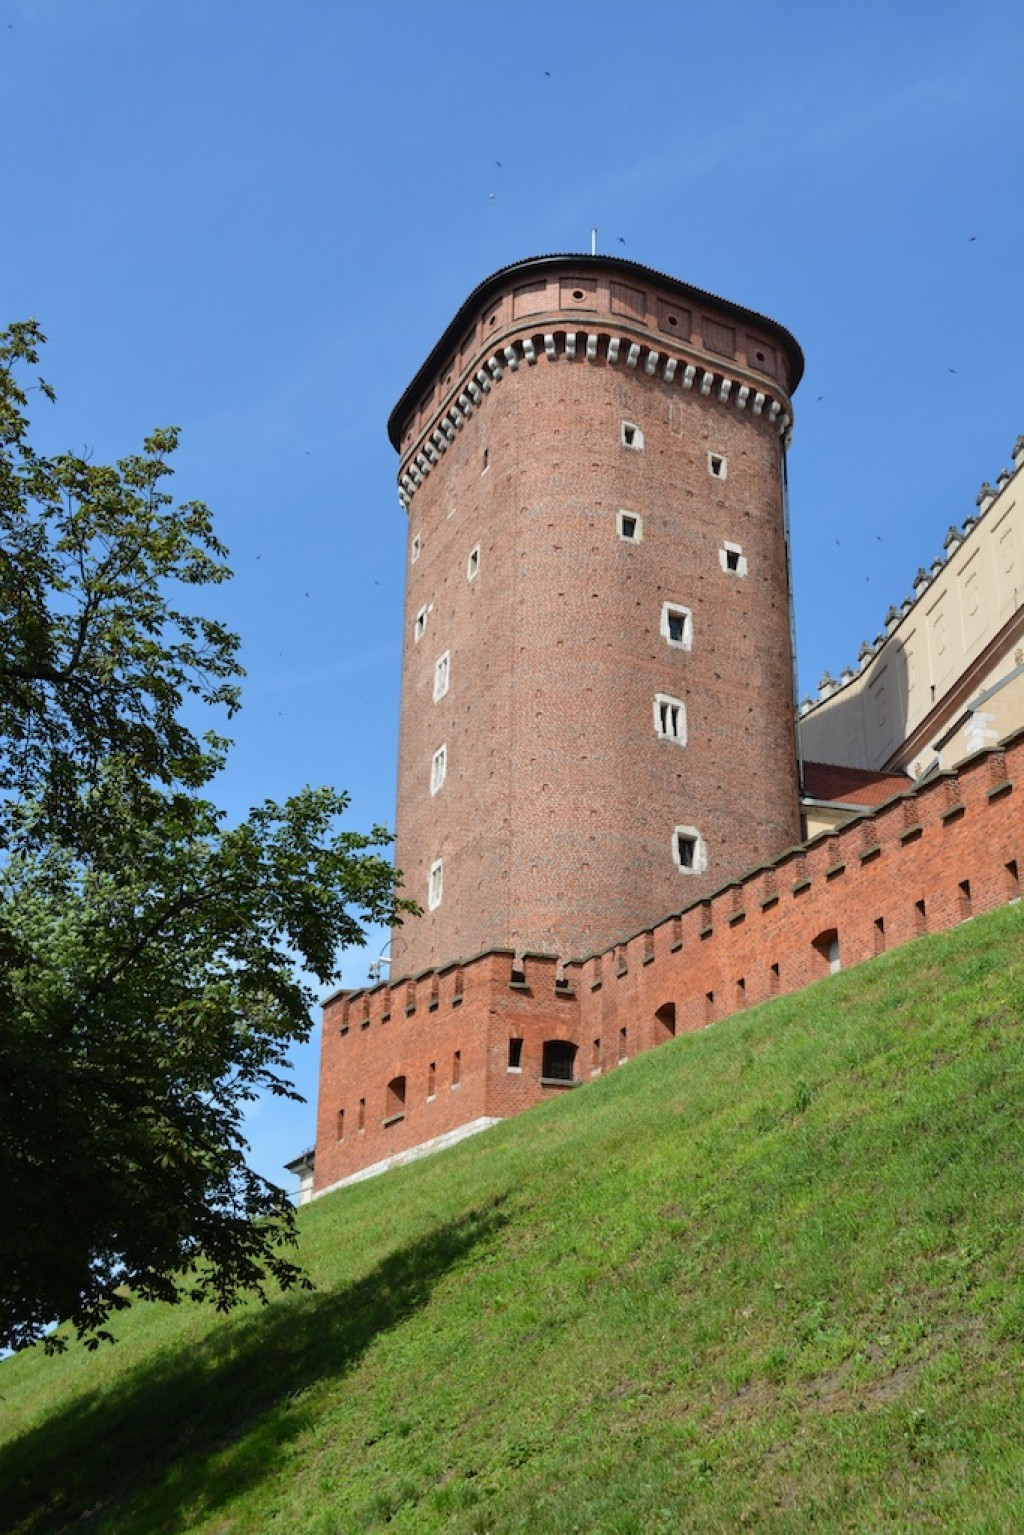 Tower outside the Wawel Royal Castle